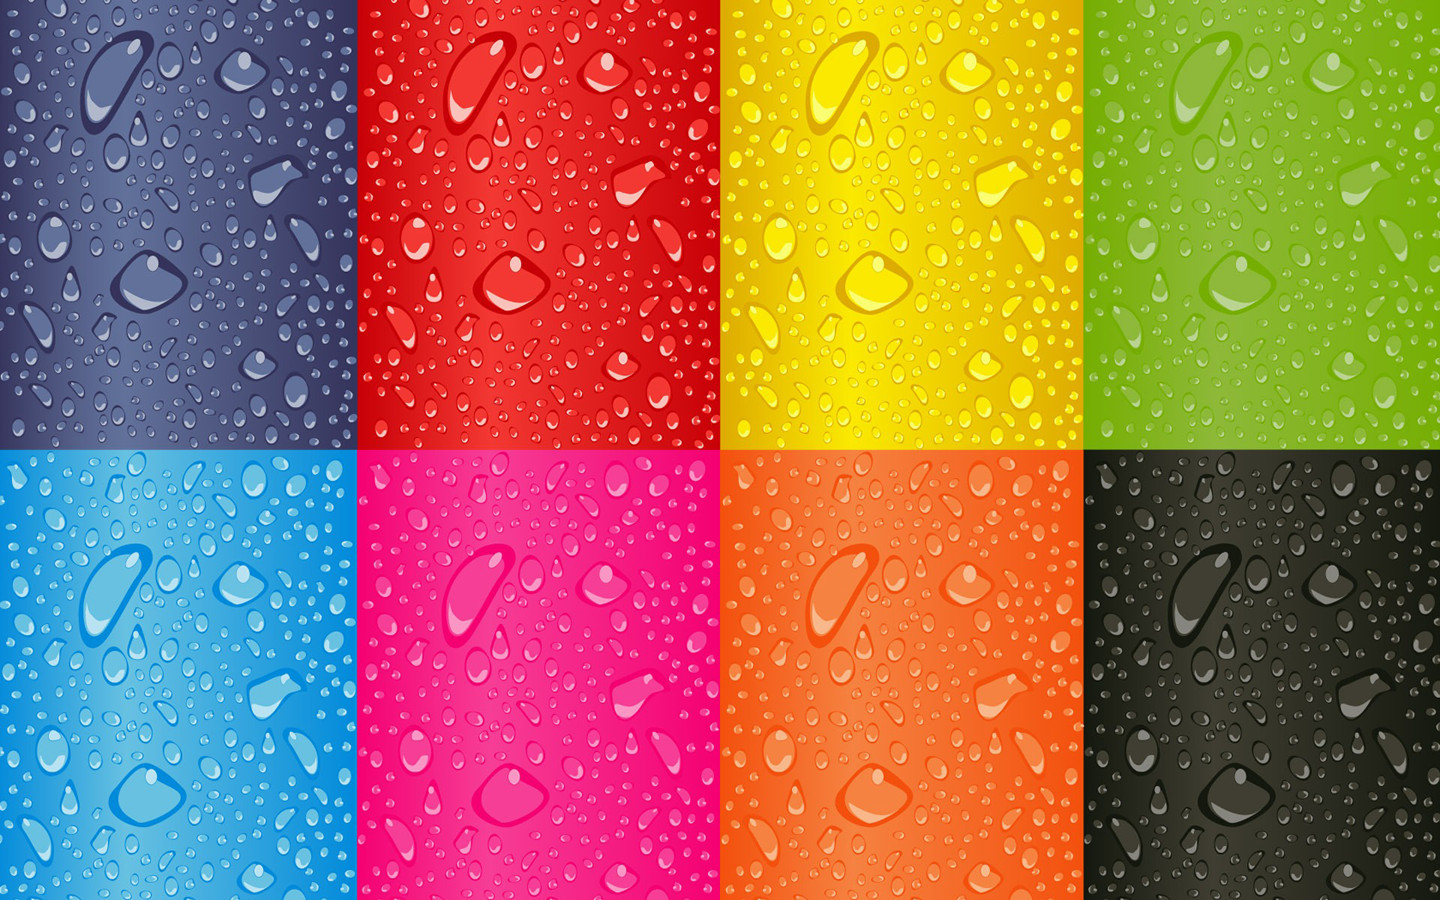 Colour And Pattern abstract_rainbow_colour_pattern_4116 1440x900 wallpaper 9